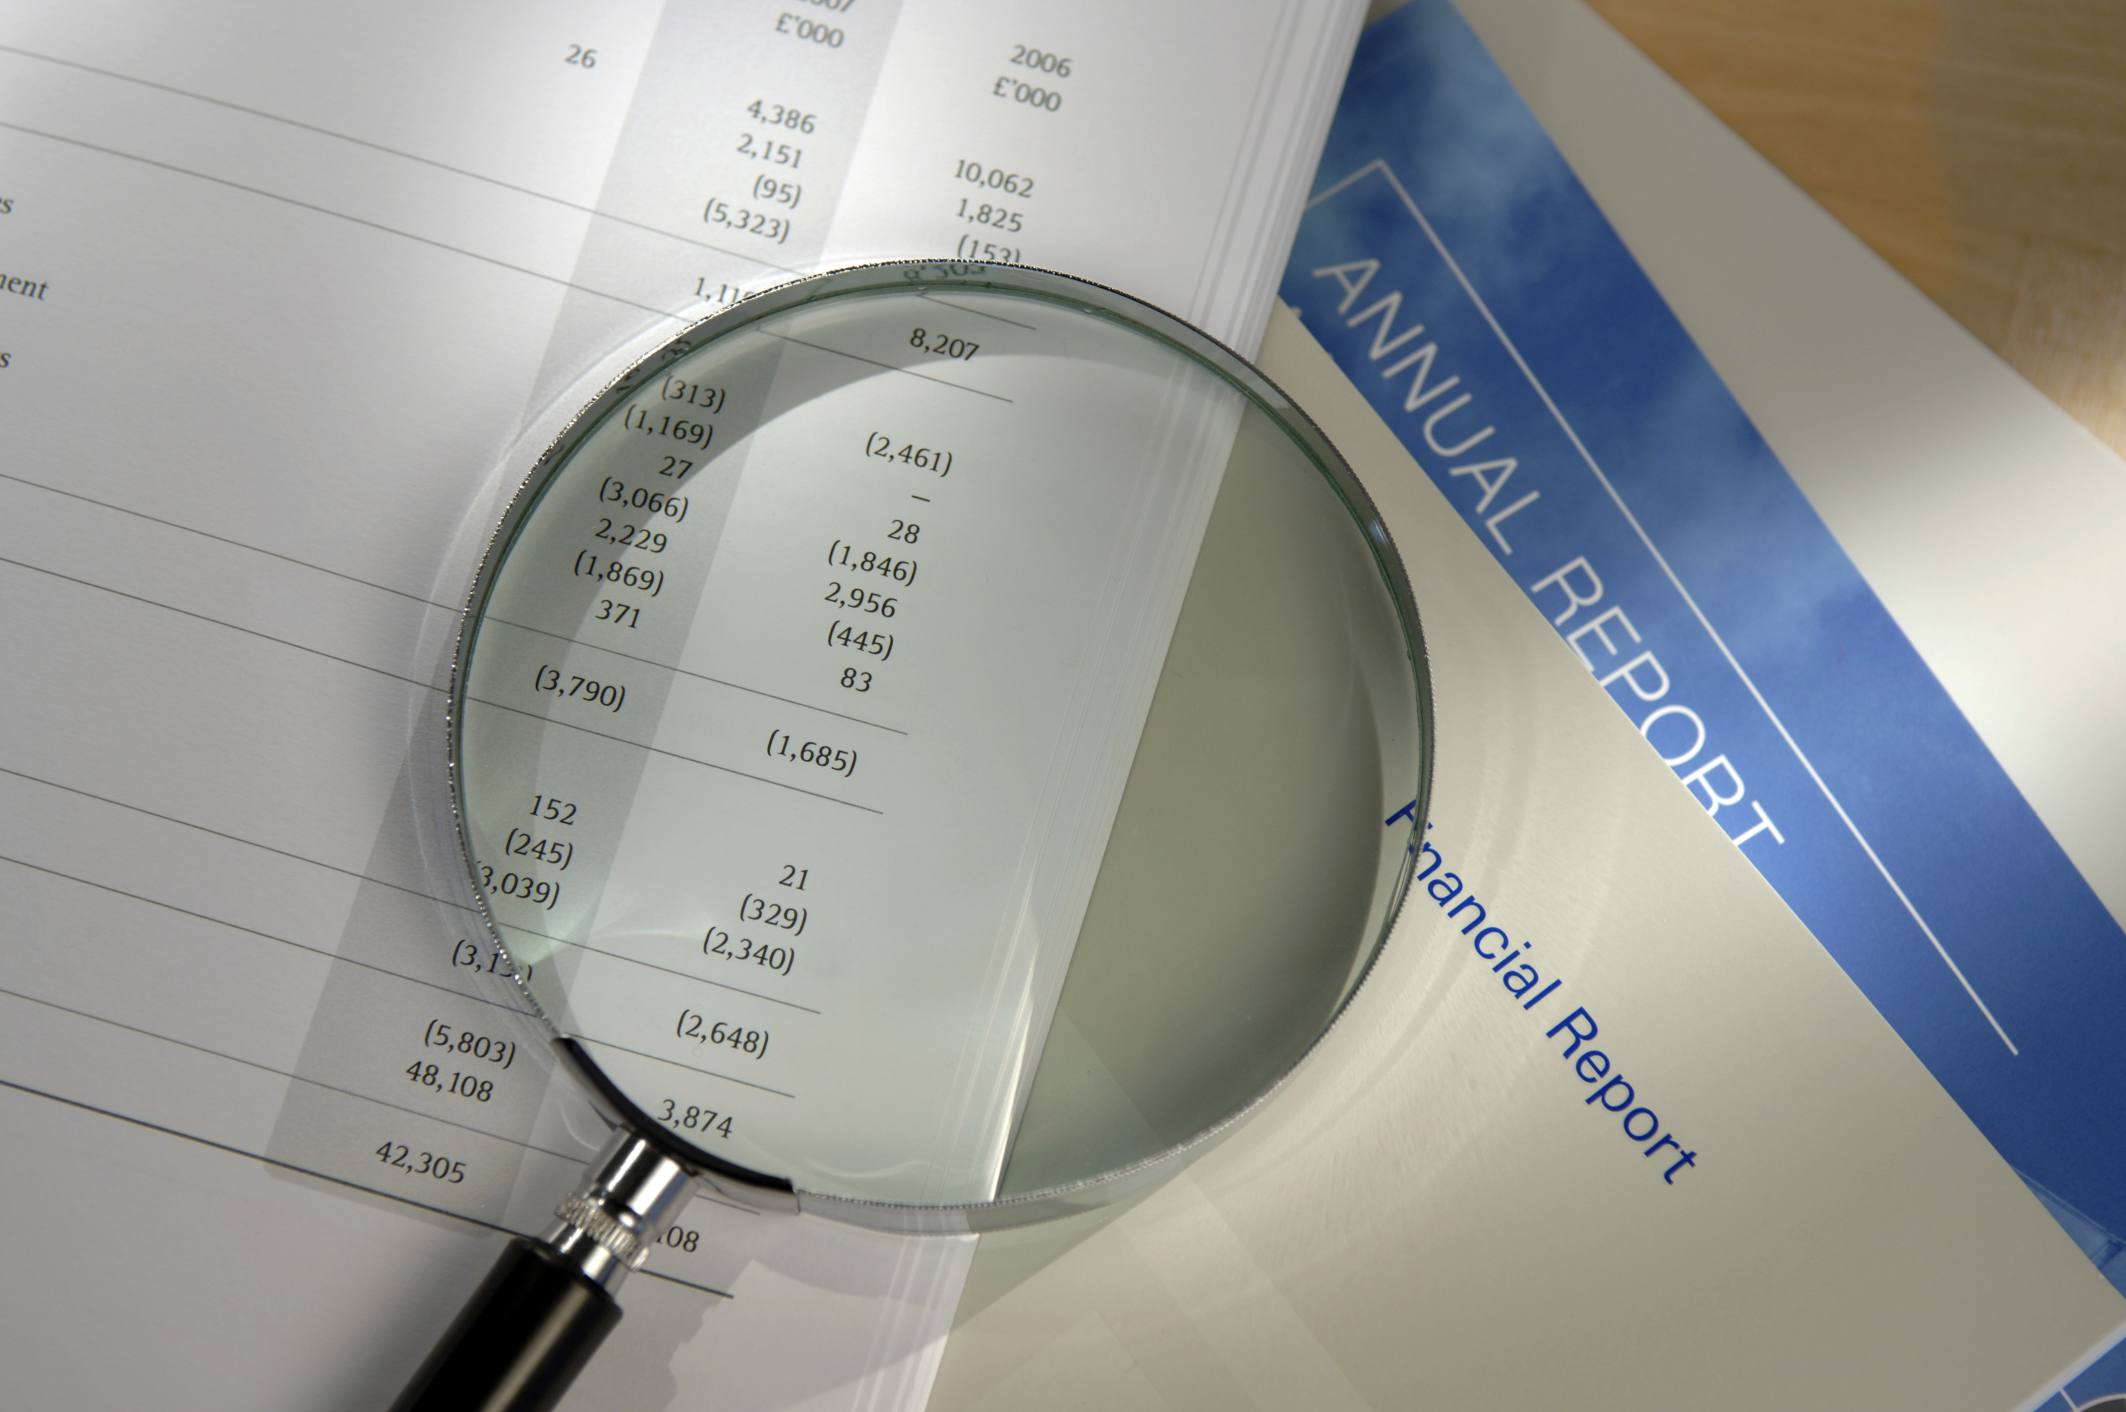 Gross Profit on the Income Statement